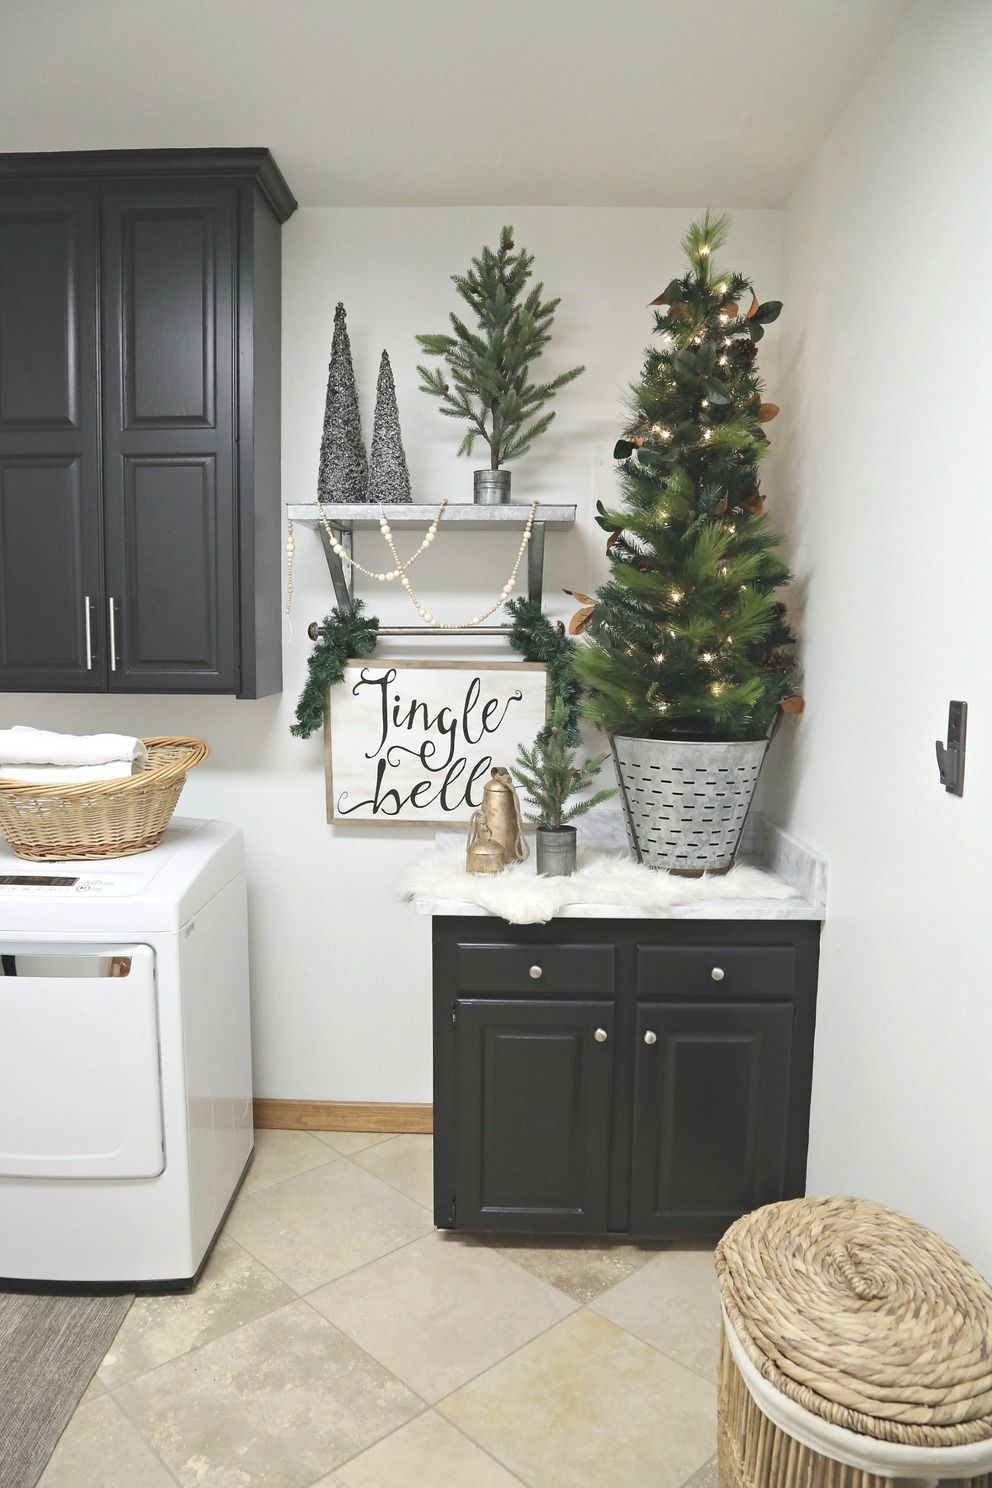 CASA Christmas Parade of Homes: Part 2 | Laundry rooms, Laundry and Room